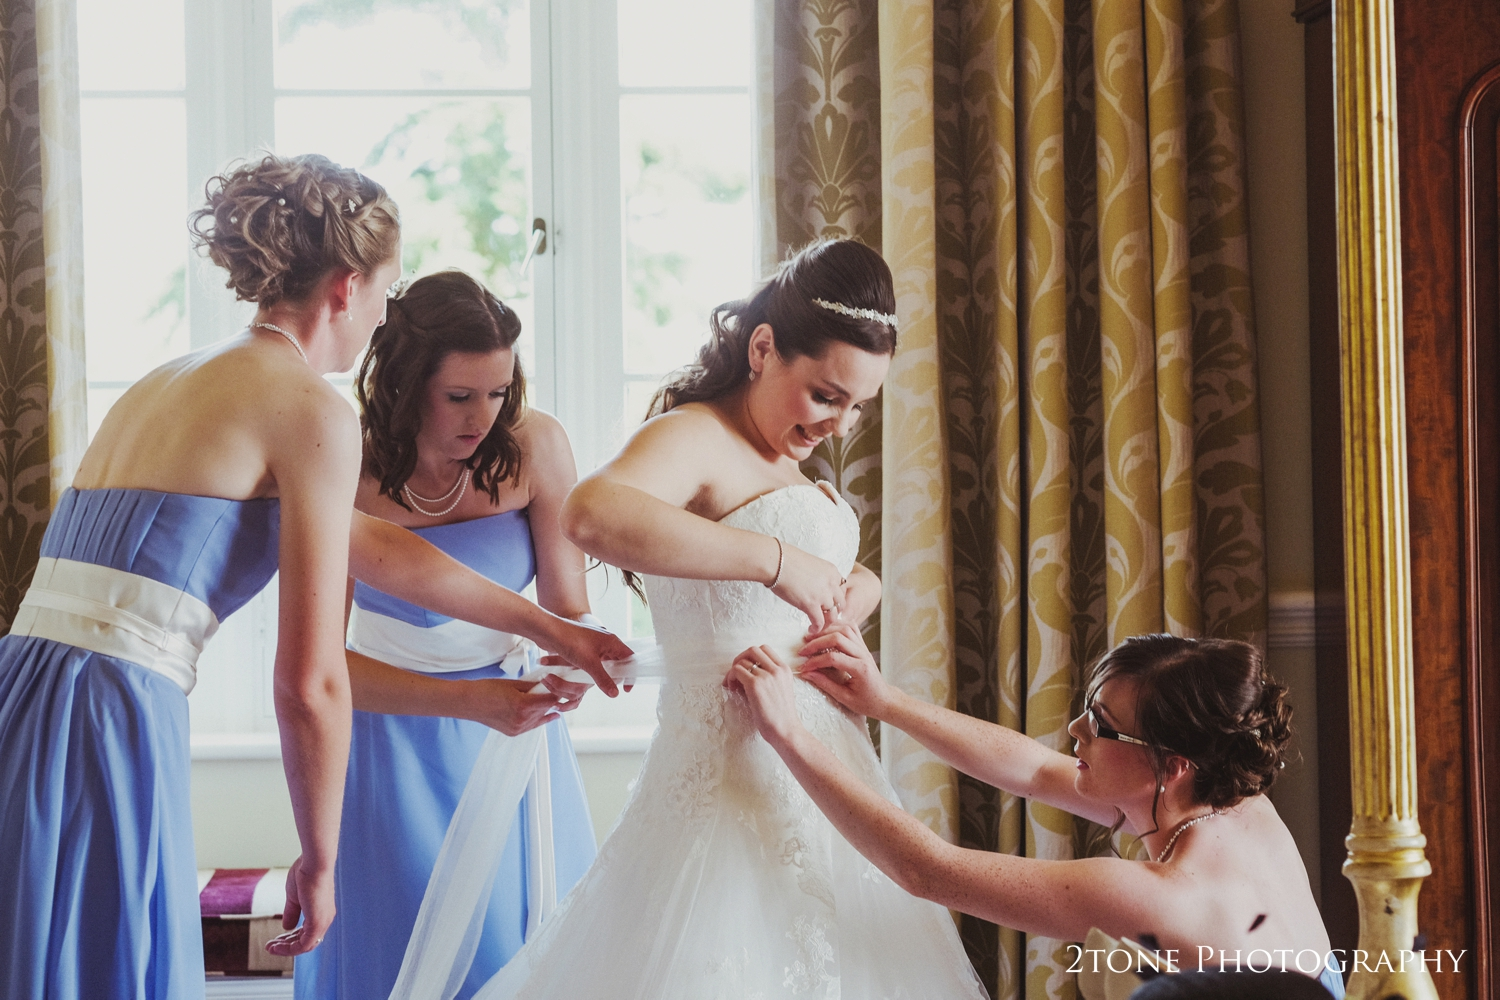 Natalies lovely bridesmaids helped her into her stunning wedding gown in Matfen Hall'sbridal suite.